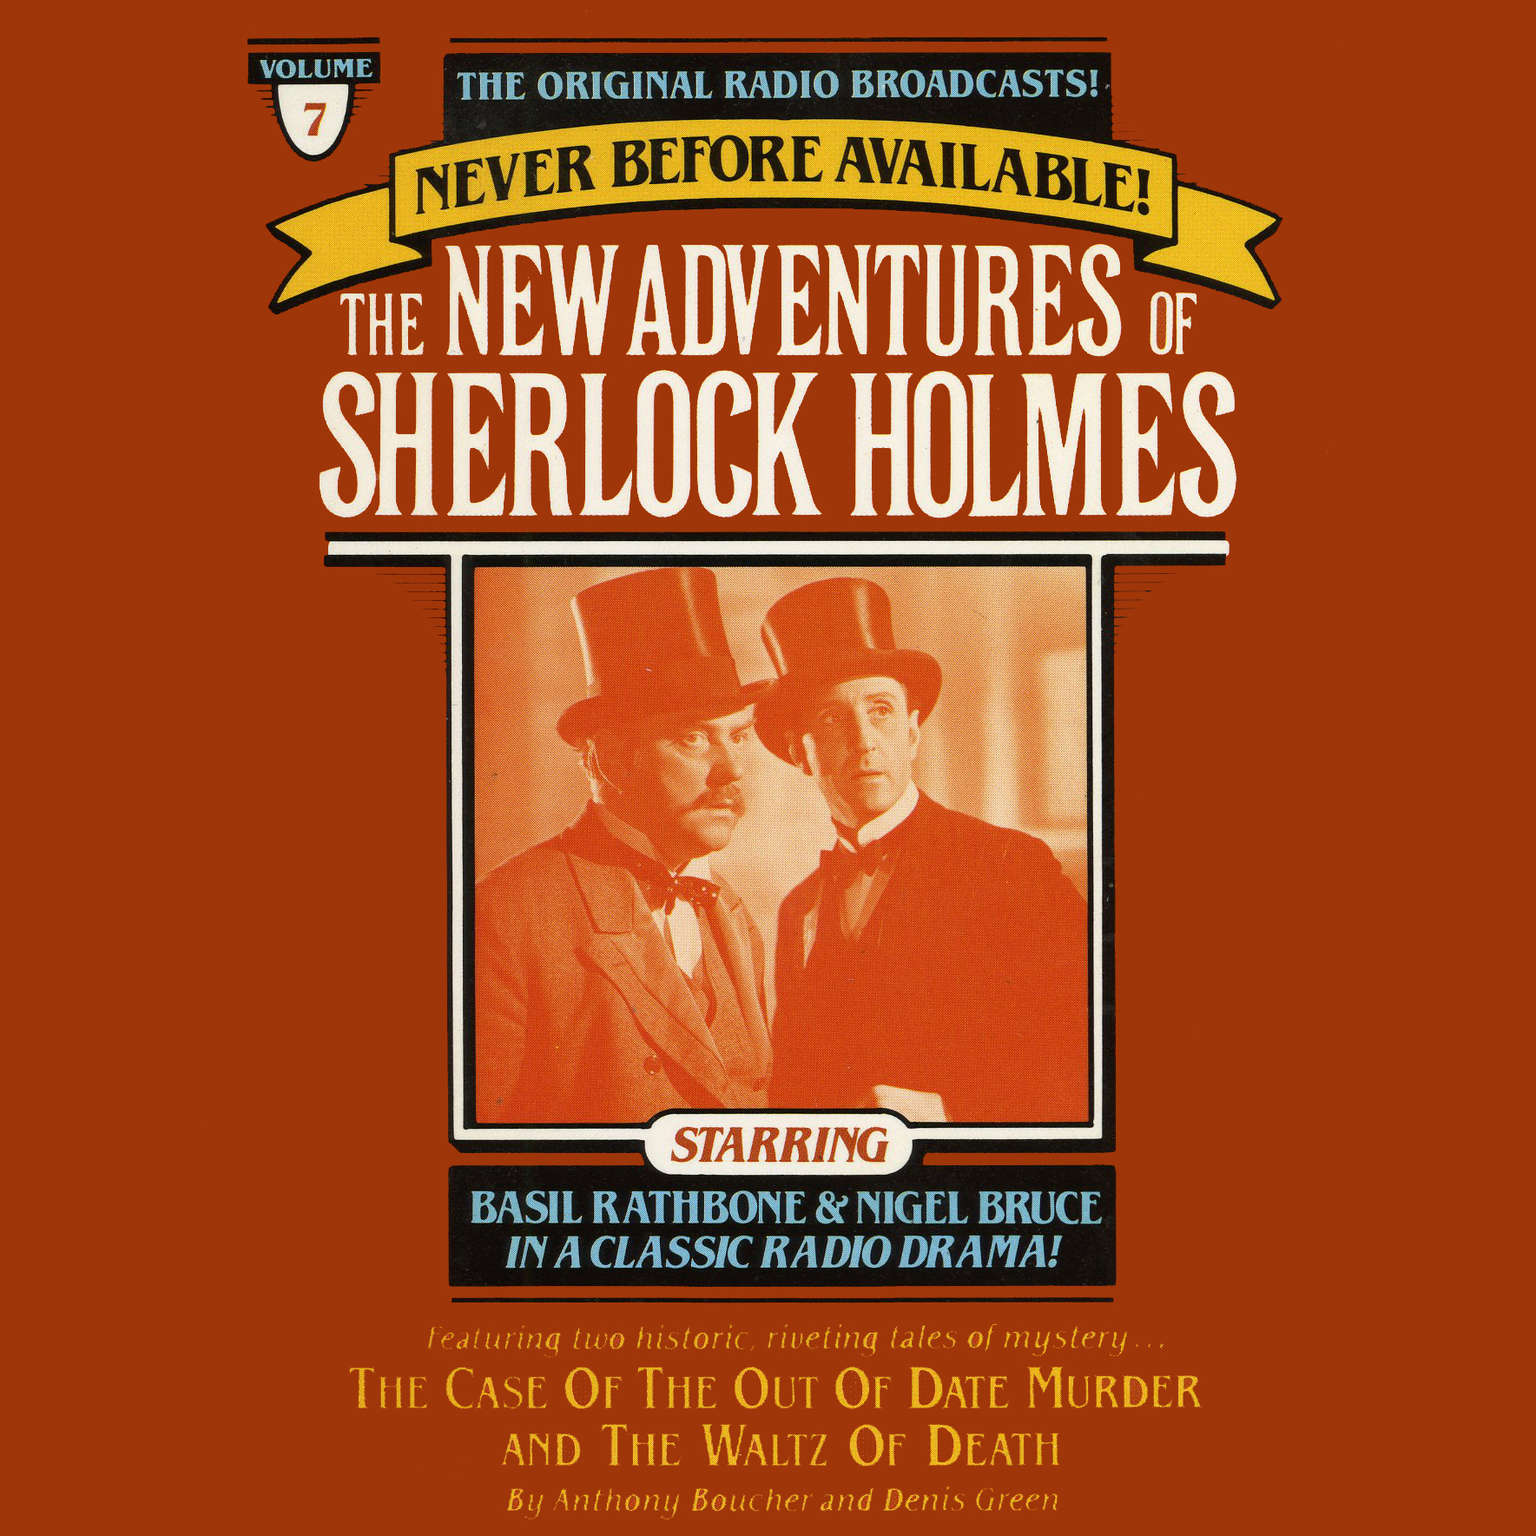 Printable The Case of the Out of Date Murder and The Waltz of Death: The New Adventures of Sherlock Holmes, Episode 7 Audiobook Cover Art